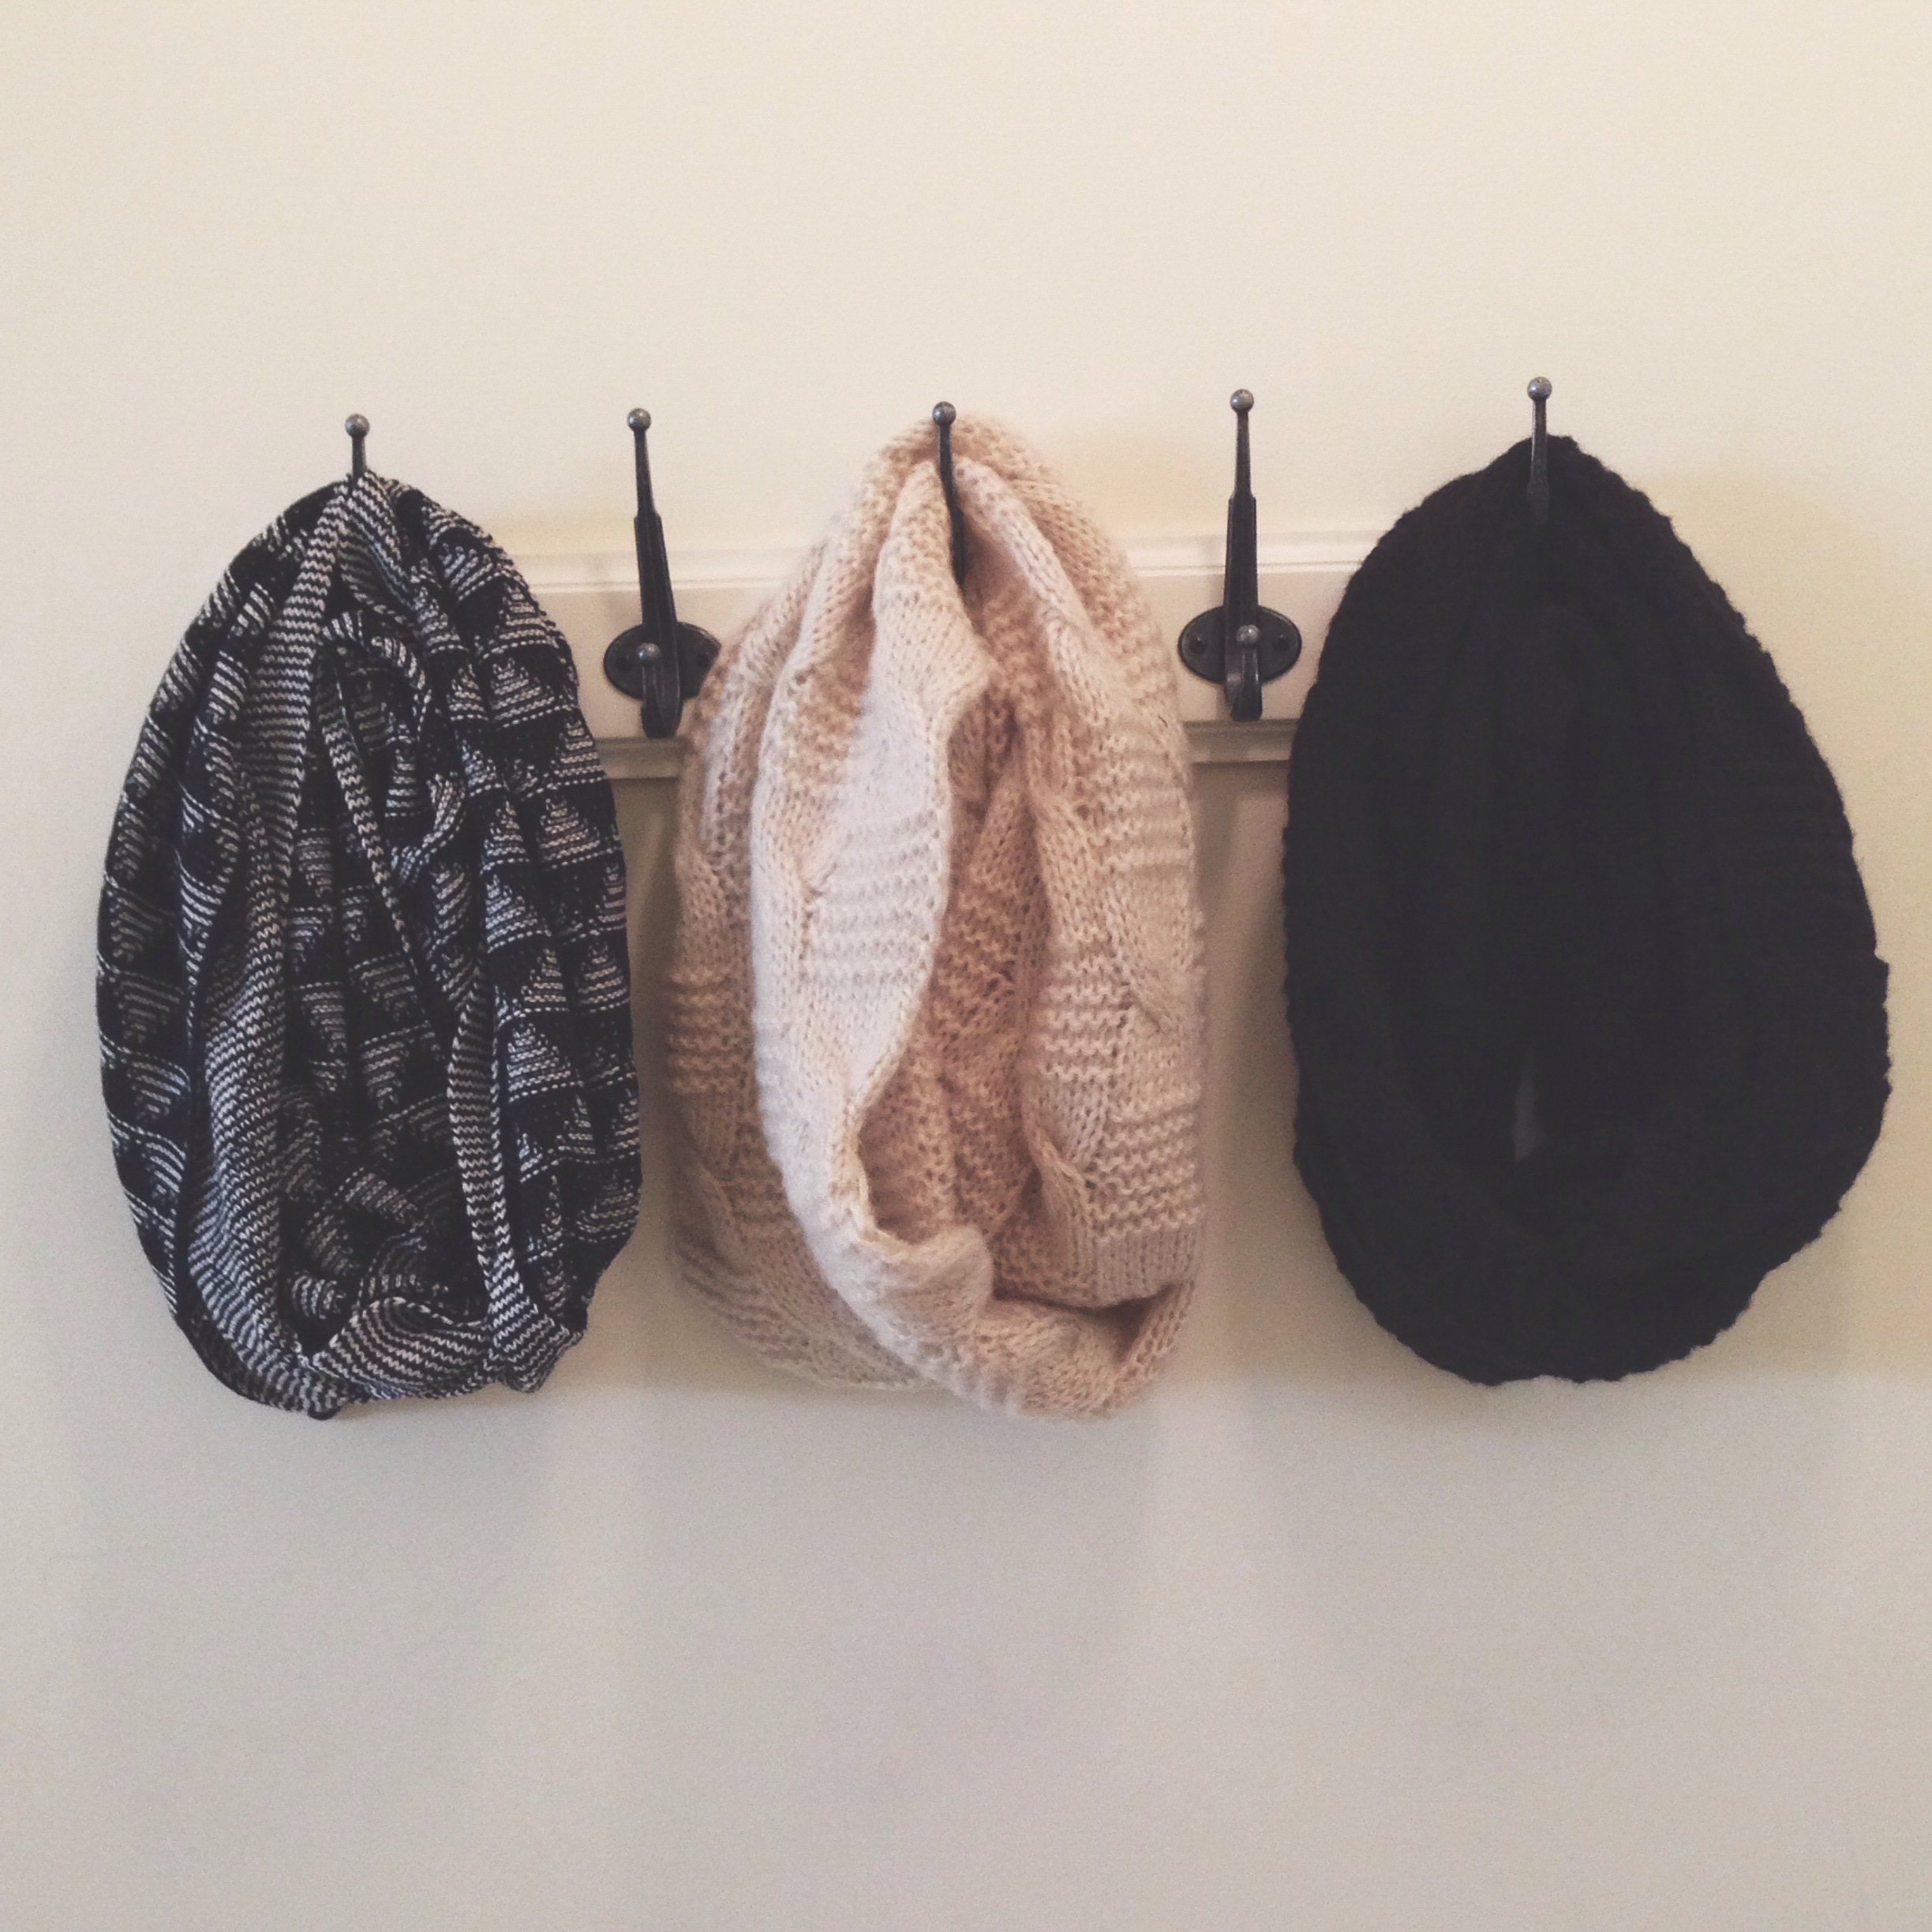 Infinity Scarves $16